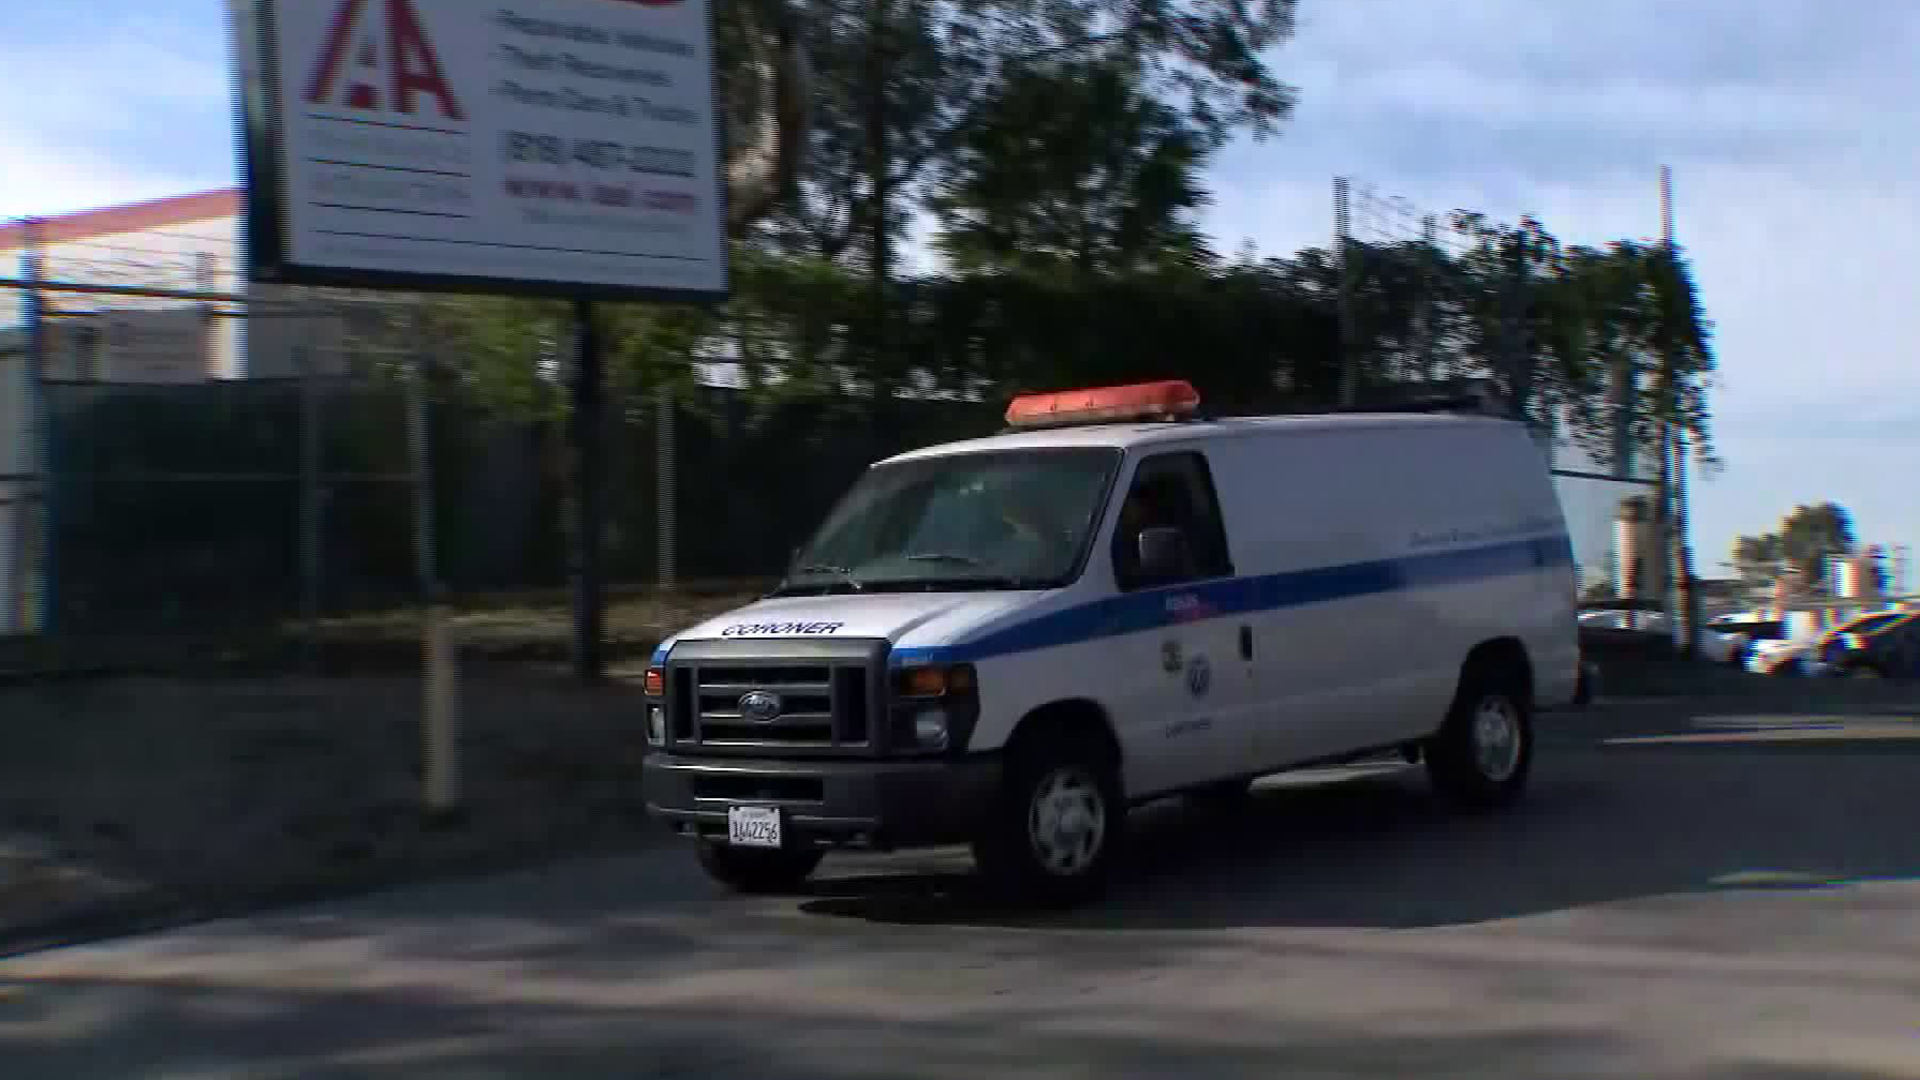 A coroner van leaves a business in Sun Valley after a worker was fatally crushed on Dec. 31, 2018. (Credit: KTLA)